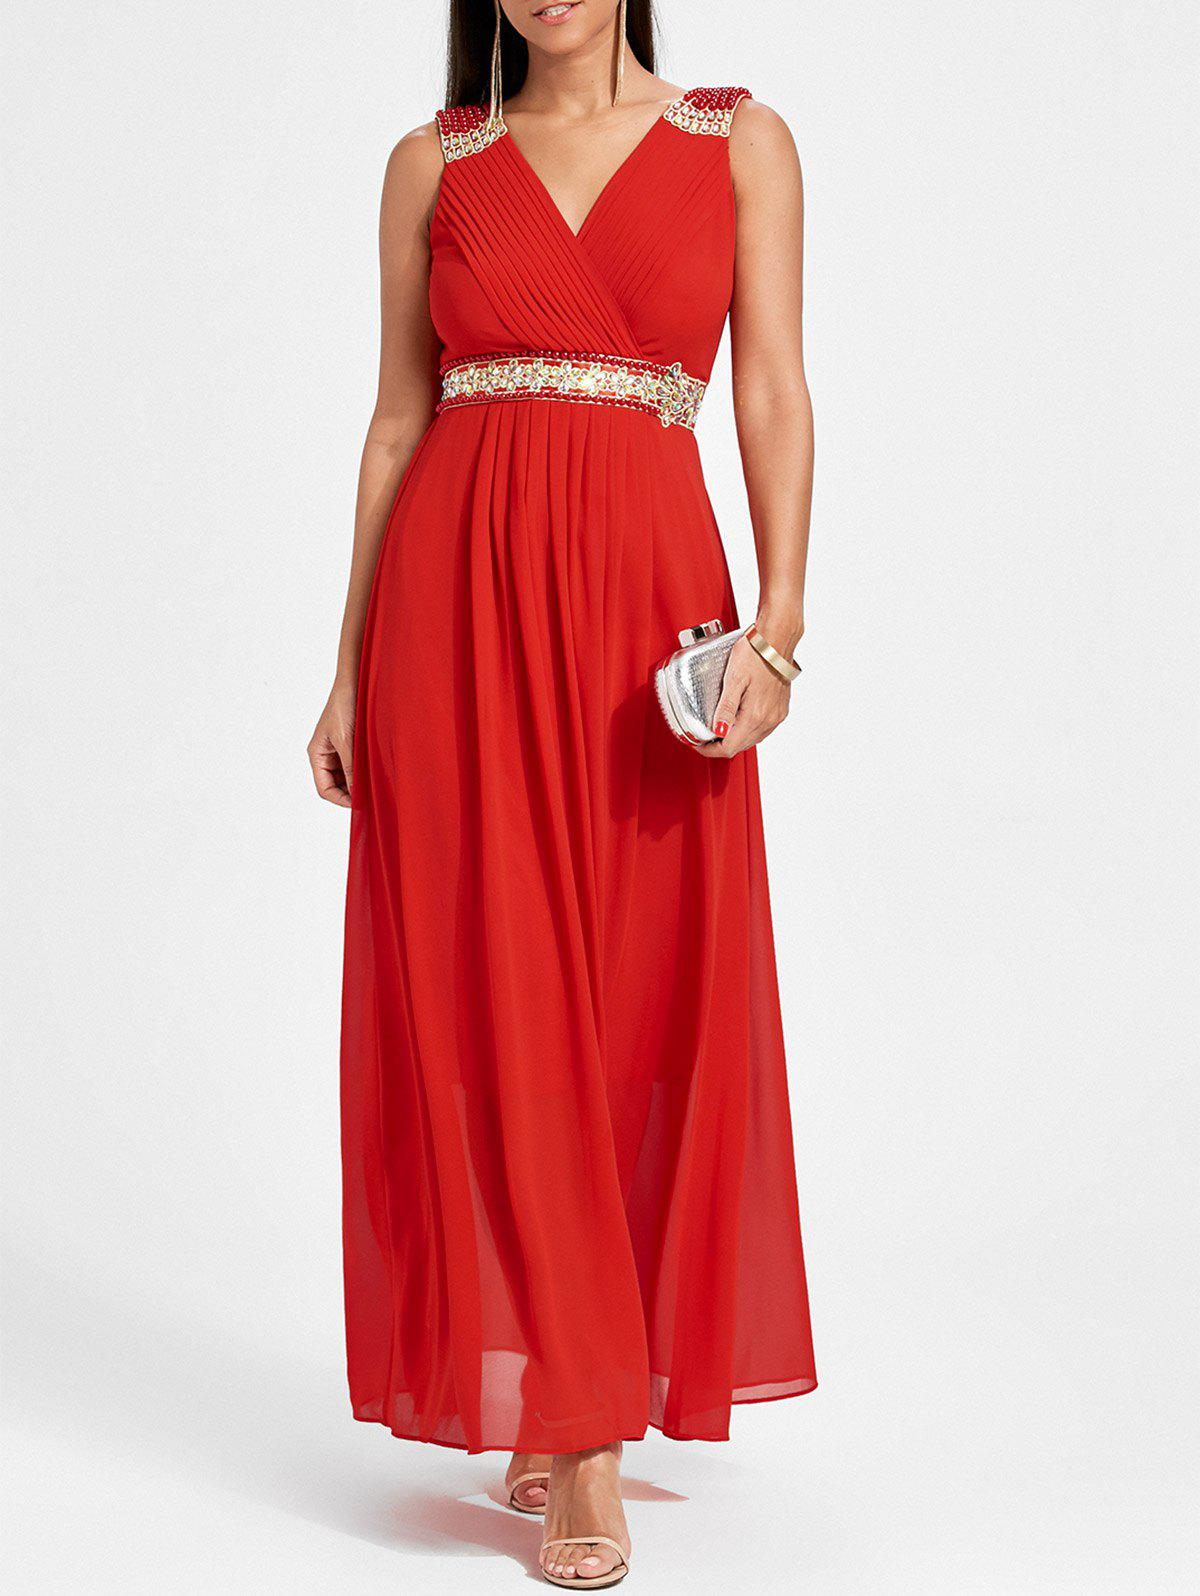 Ruched Rhinestone Maxi Party Dress - [